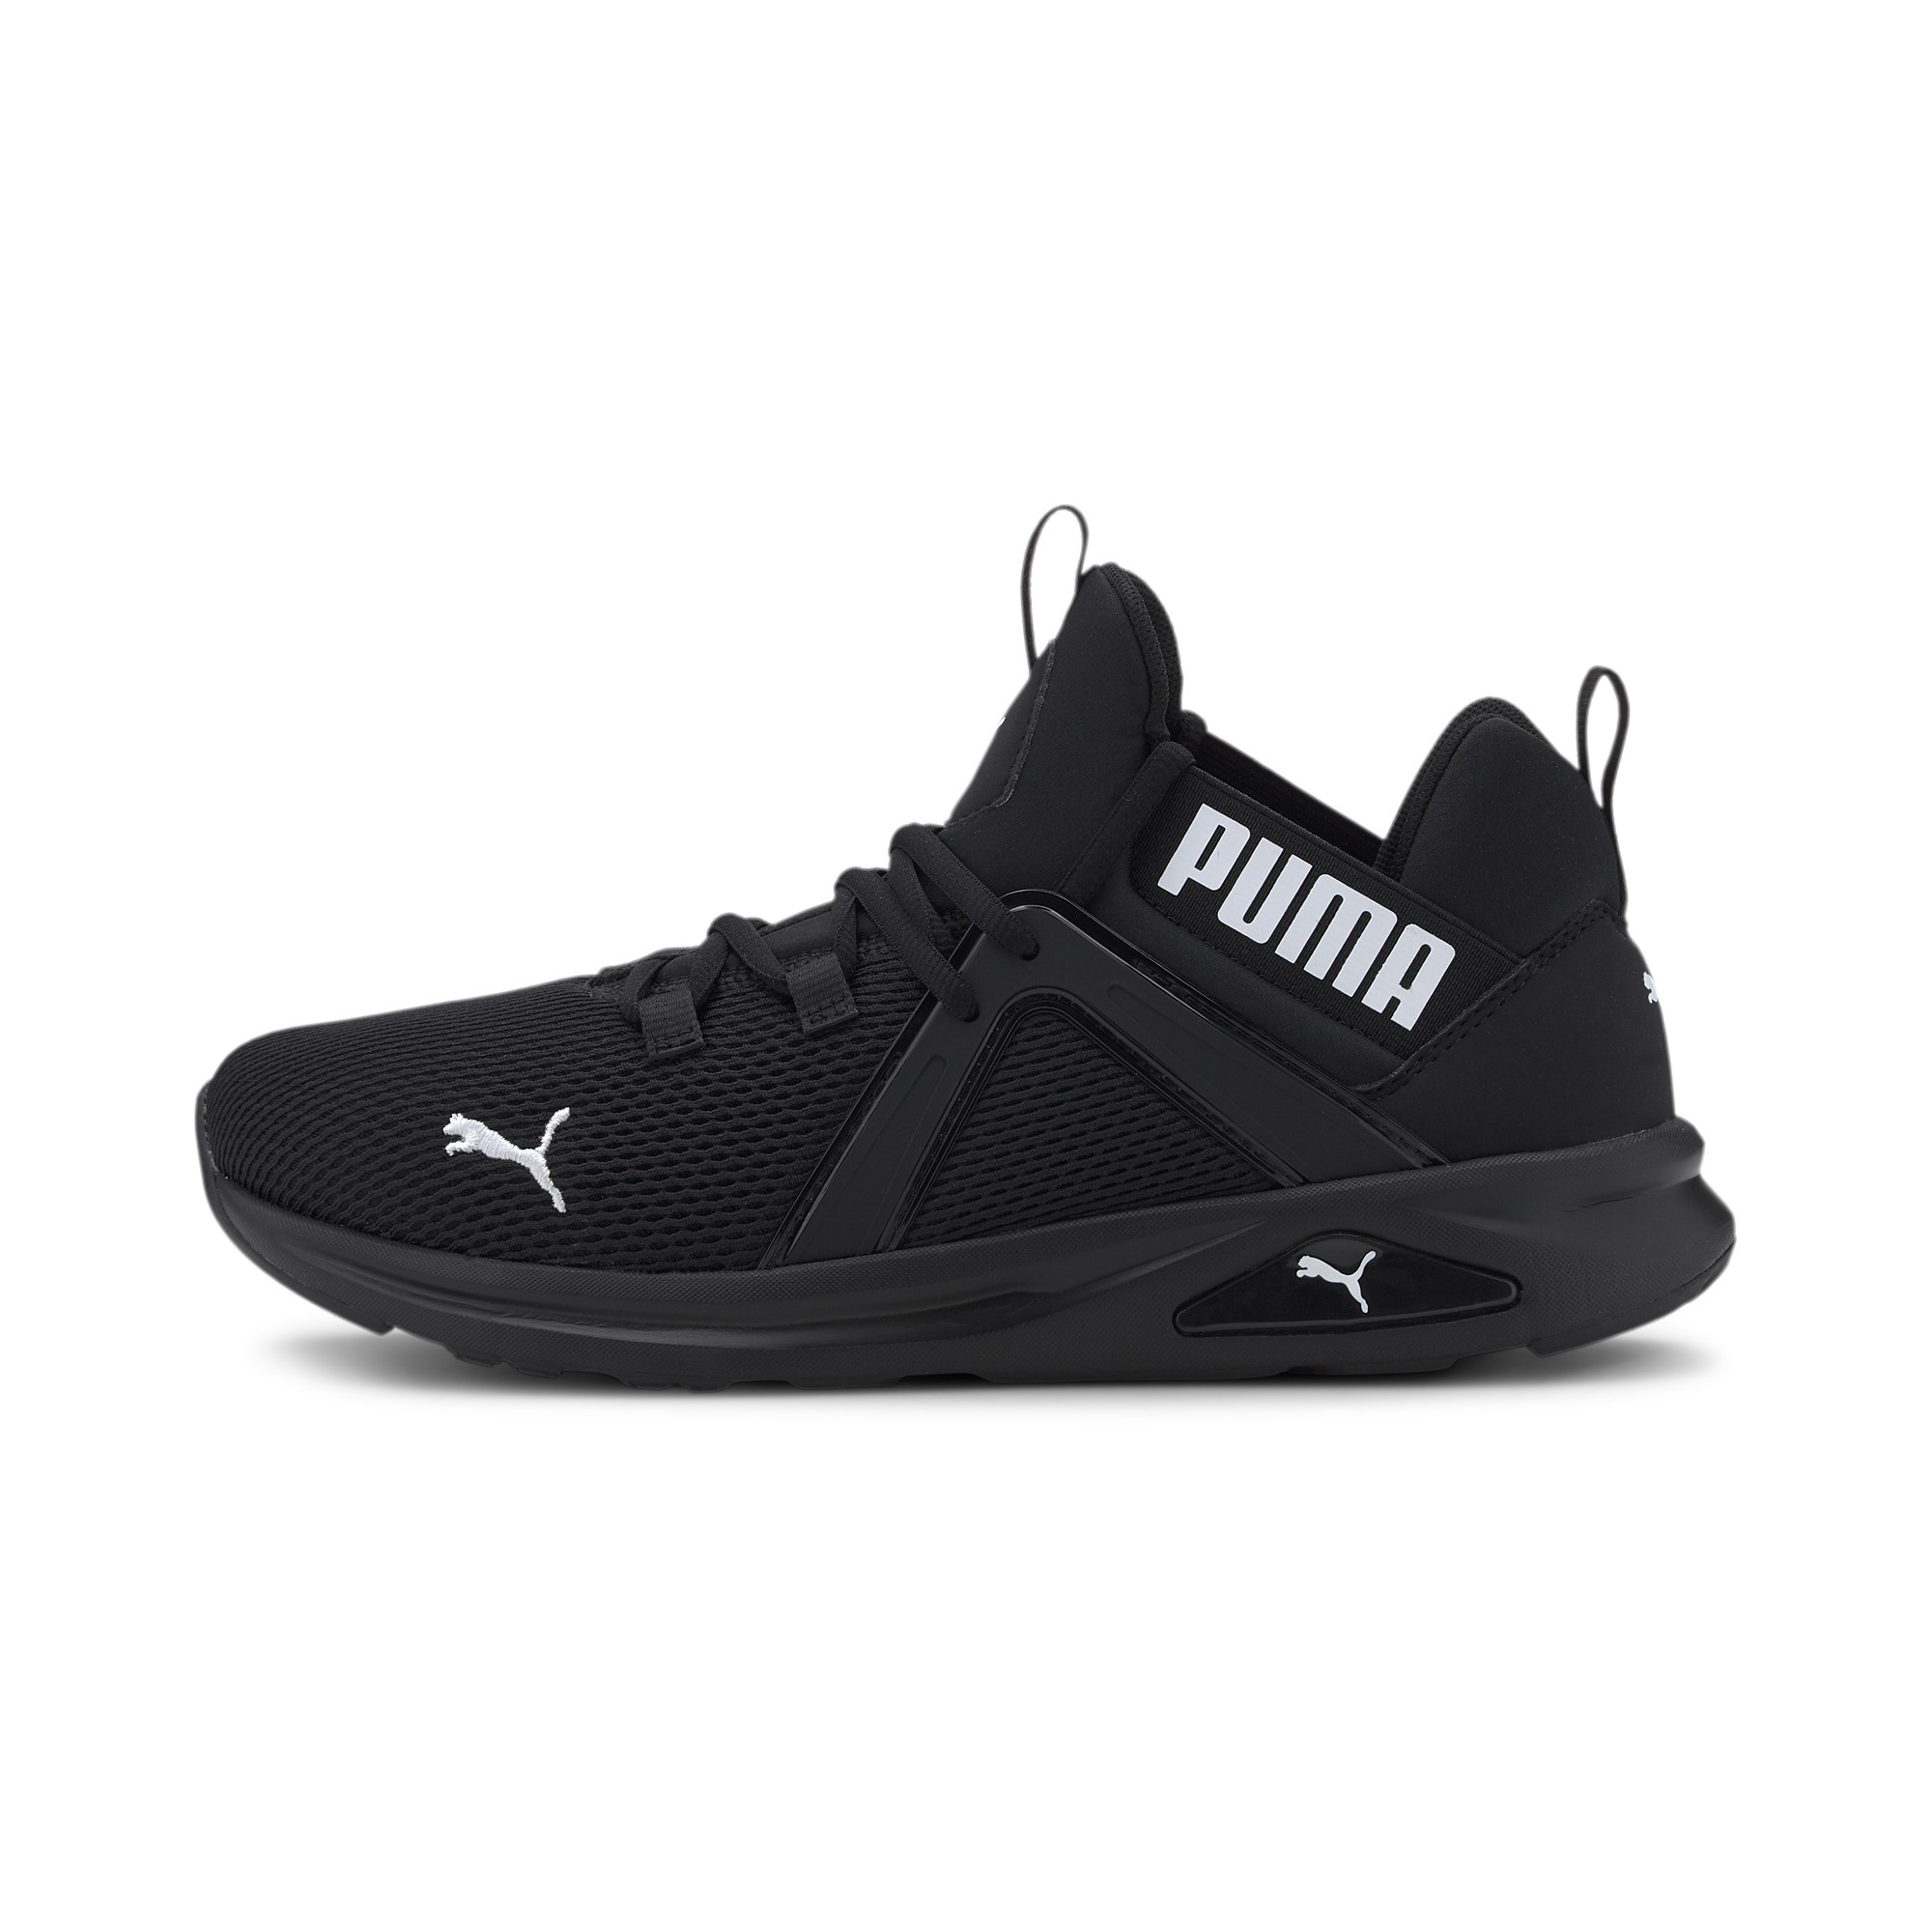 PUMA-Men-039-s-Enzo-2-Training-Shoes thumbnail 10